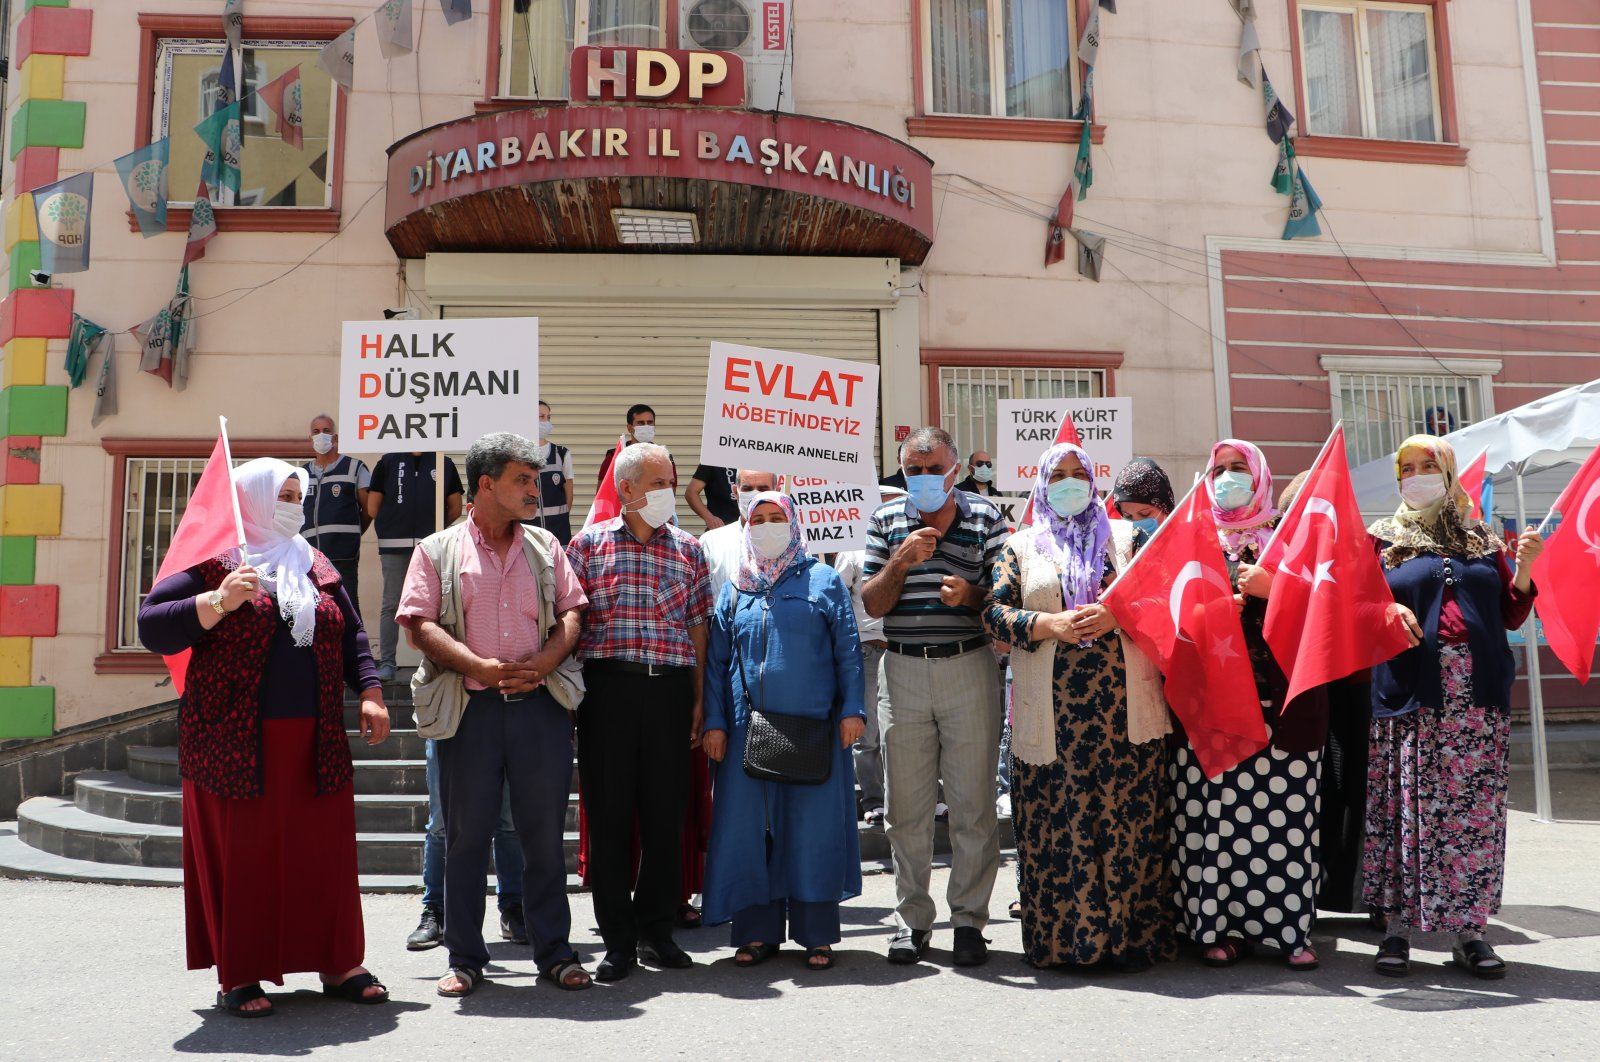 Families hold banners and placards in front of the pro-PKK HDP headquarters in Turkey's southeastern Diyarbakır province, July 14, 2021. (AA Photo)